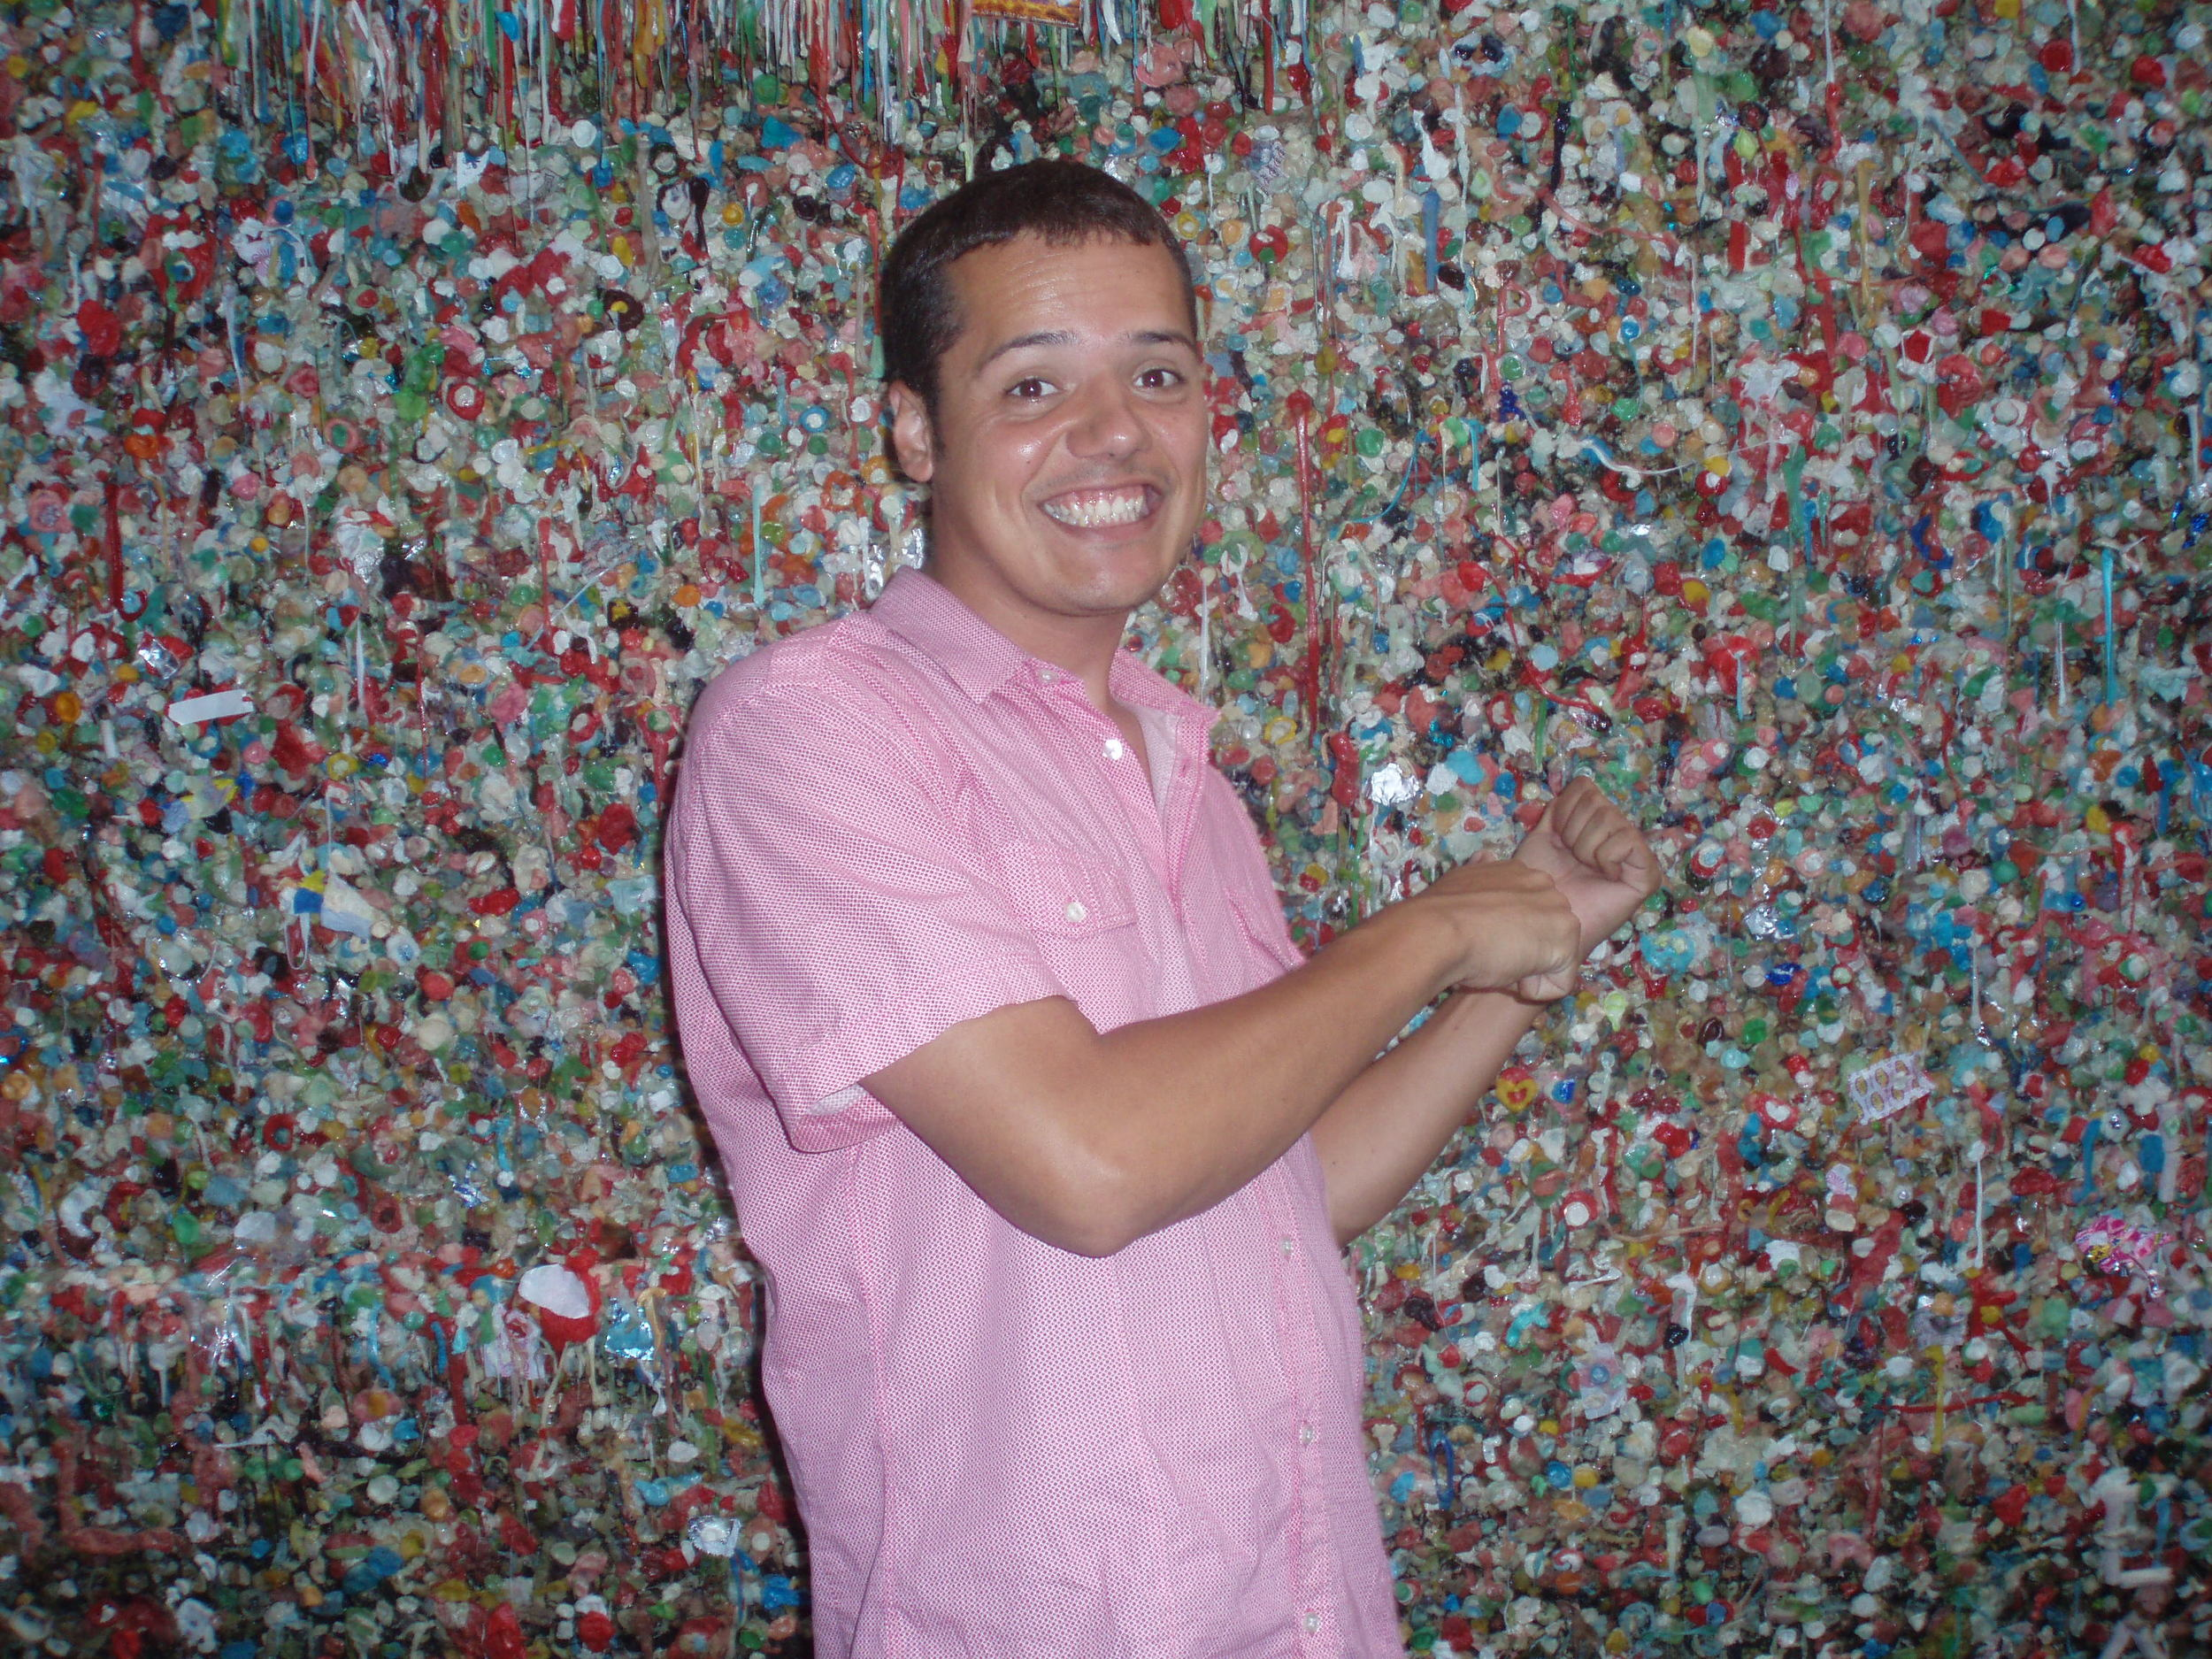 Bubble gum wall near Pike Place in Seattle